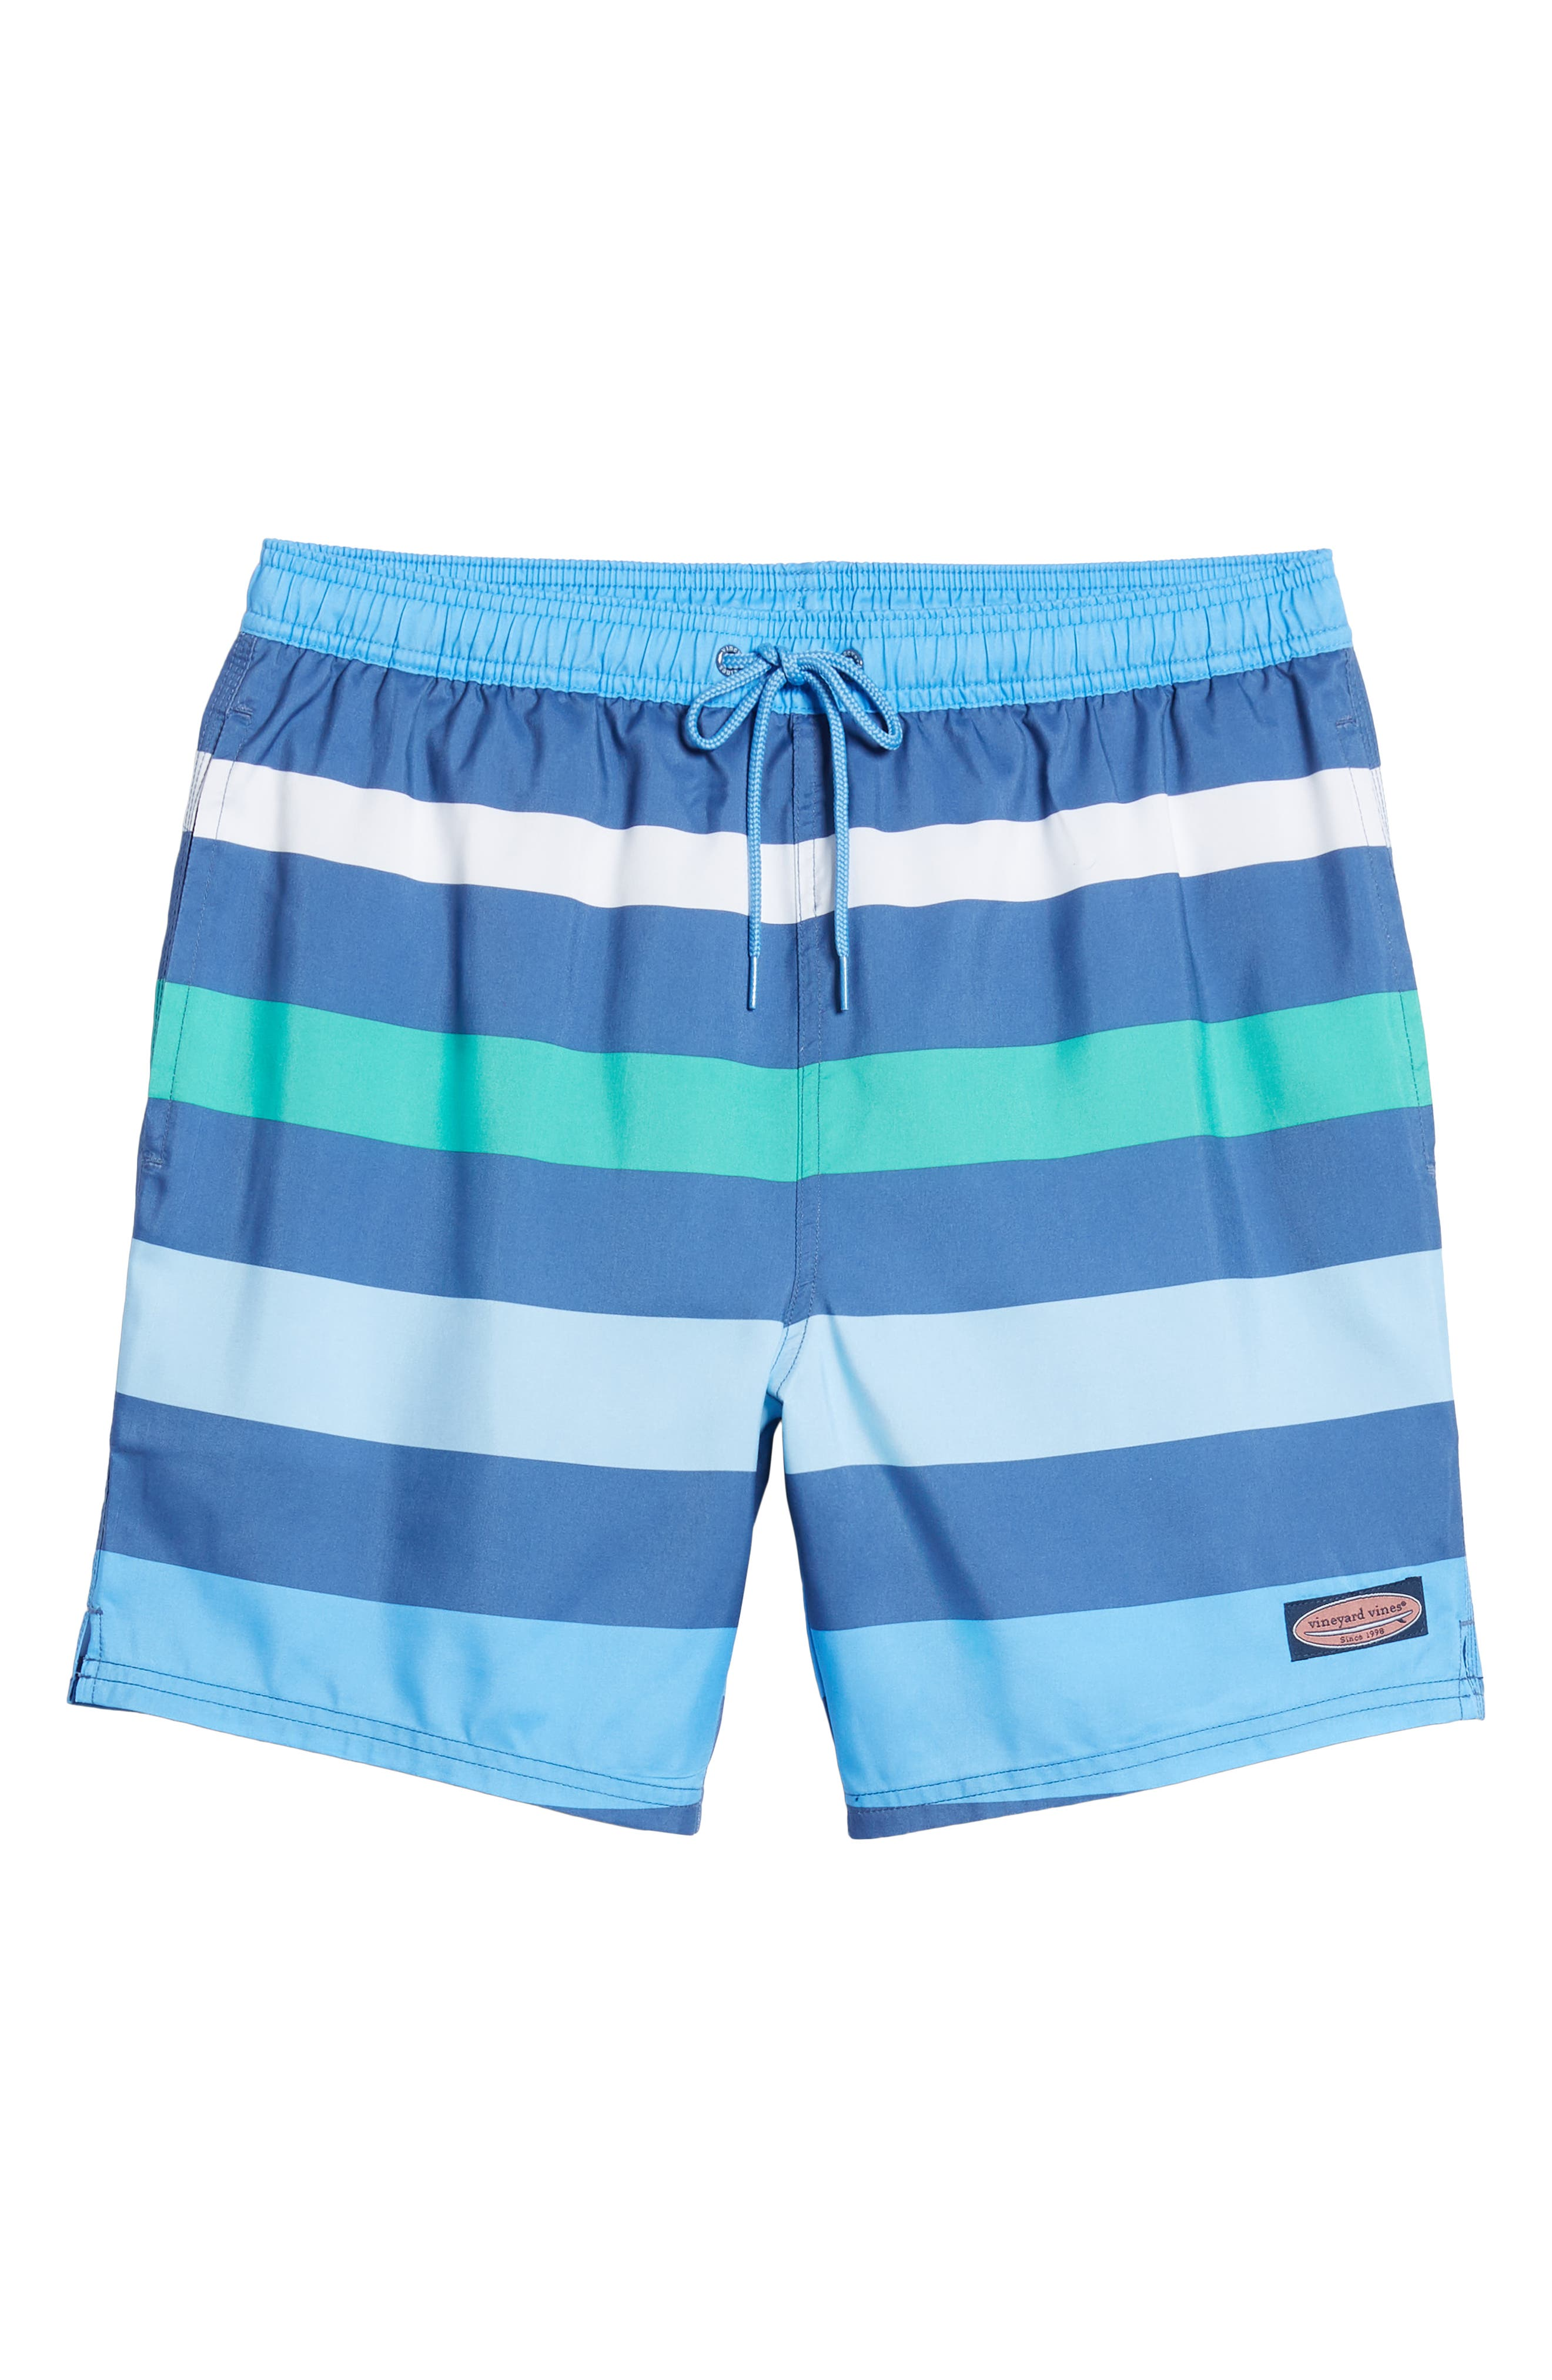 Chappy Pieced Swim Trunks,                             Alternate thumbnail 6, color,                             MOONSHINE